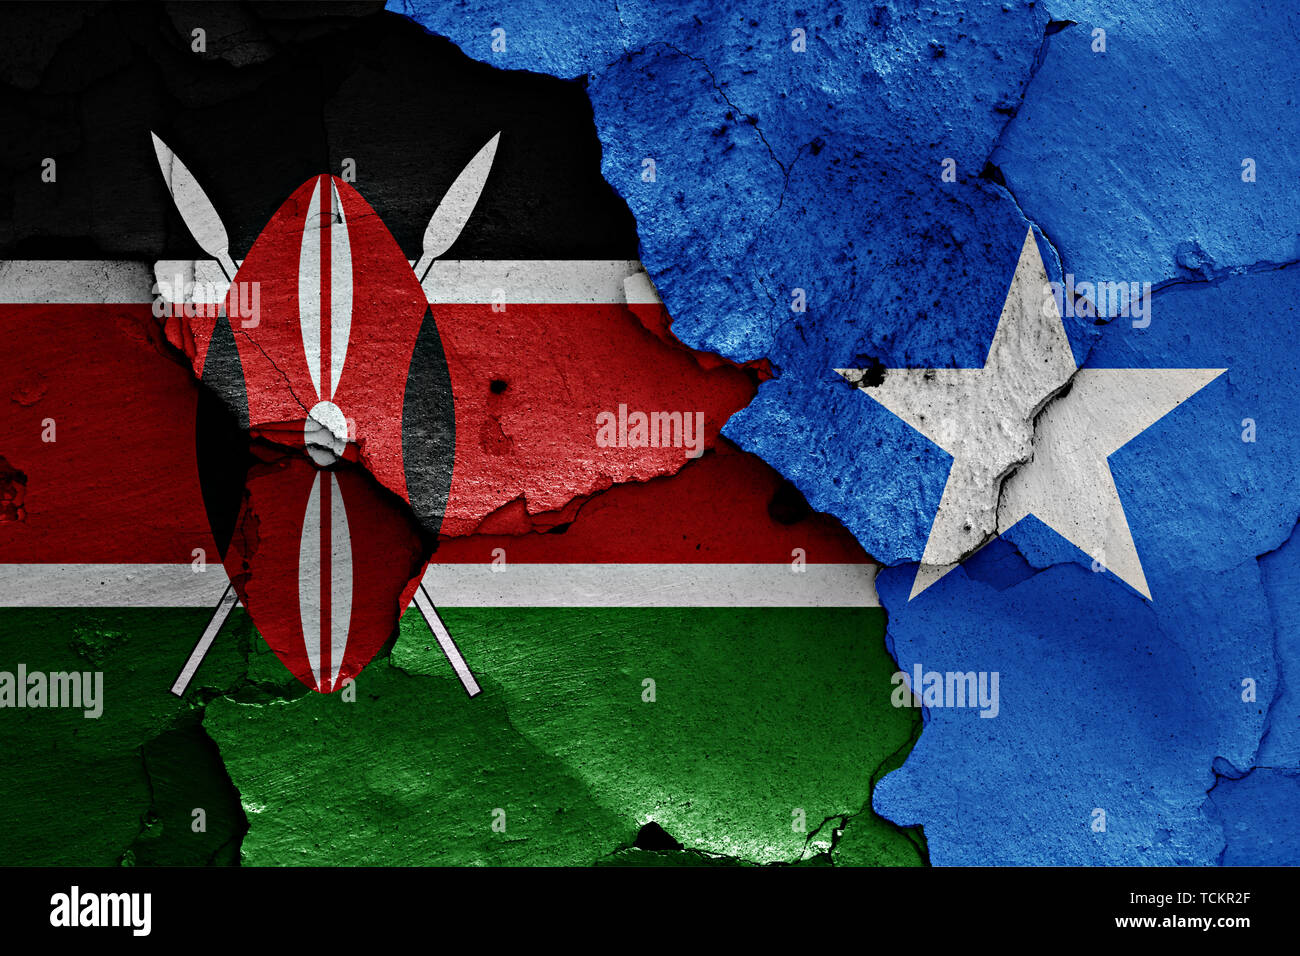 flags of Kenya and Somalia painted on cracked wall - Stock Image